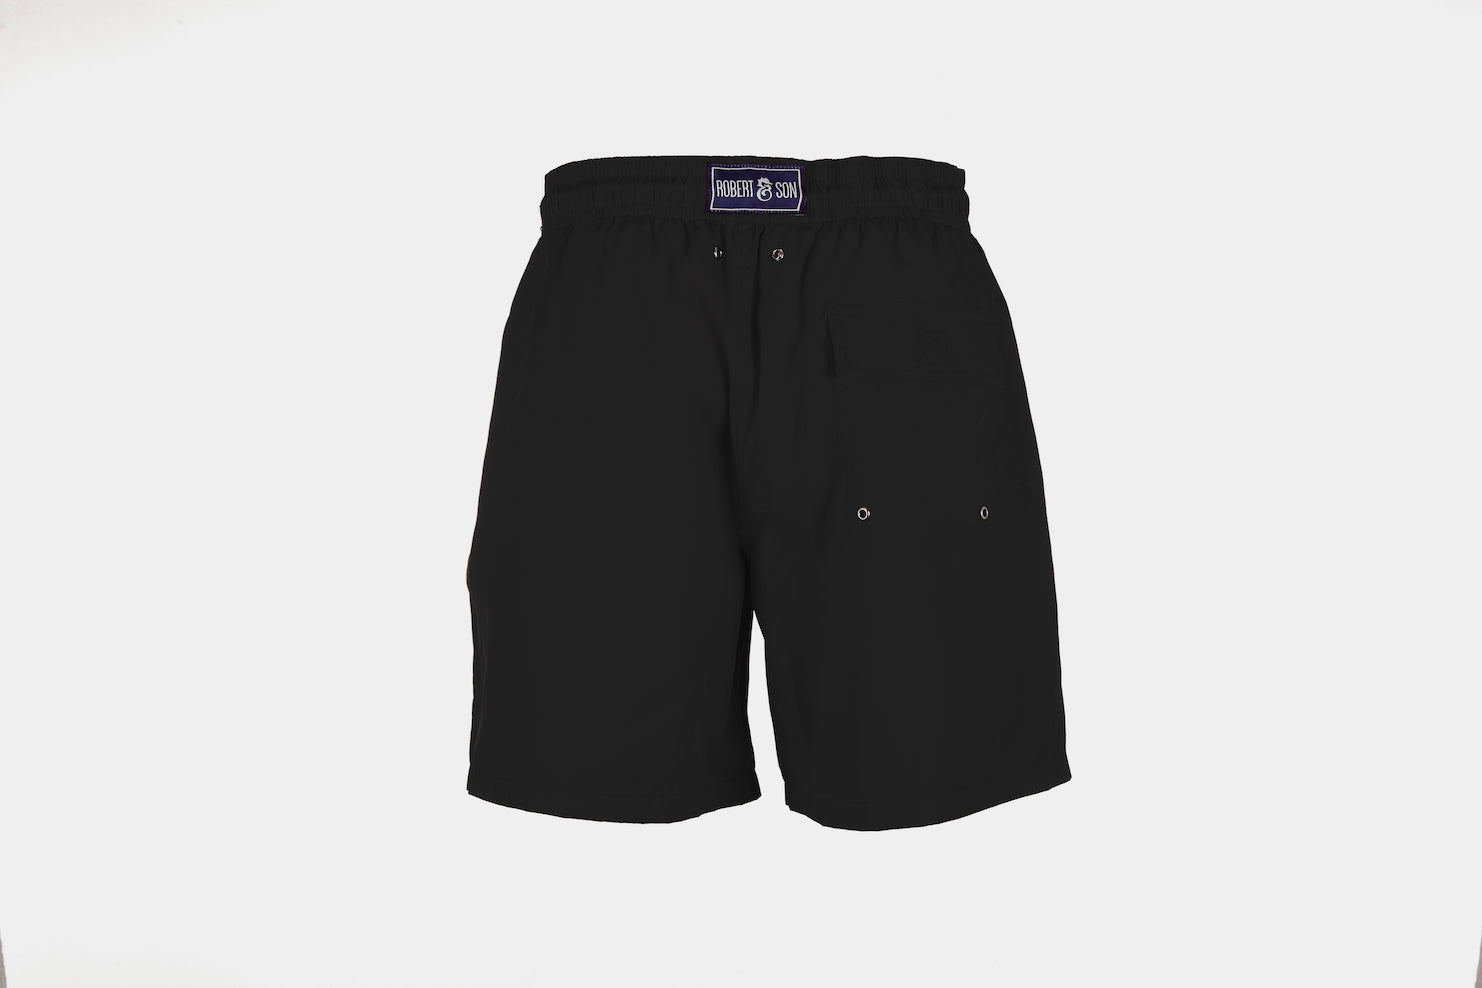 Boys Designer Swim Shorts, Black Plain